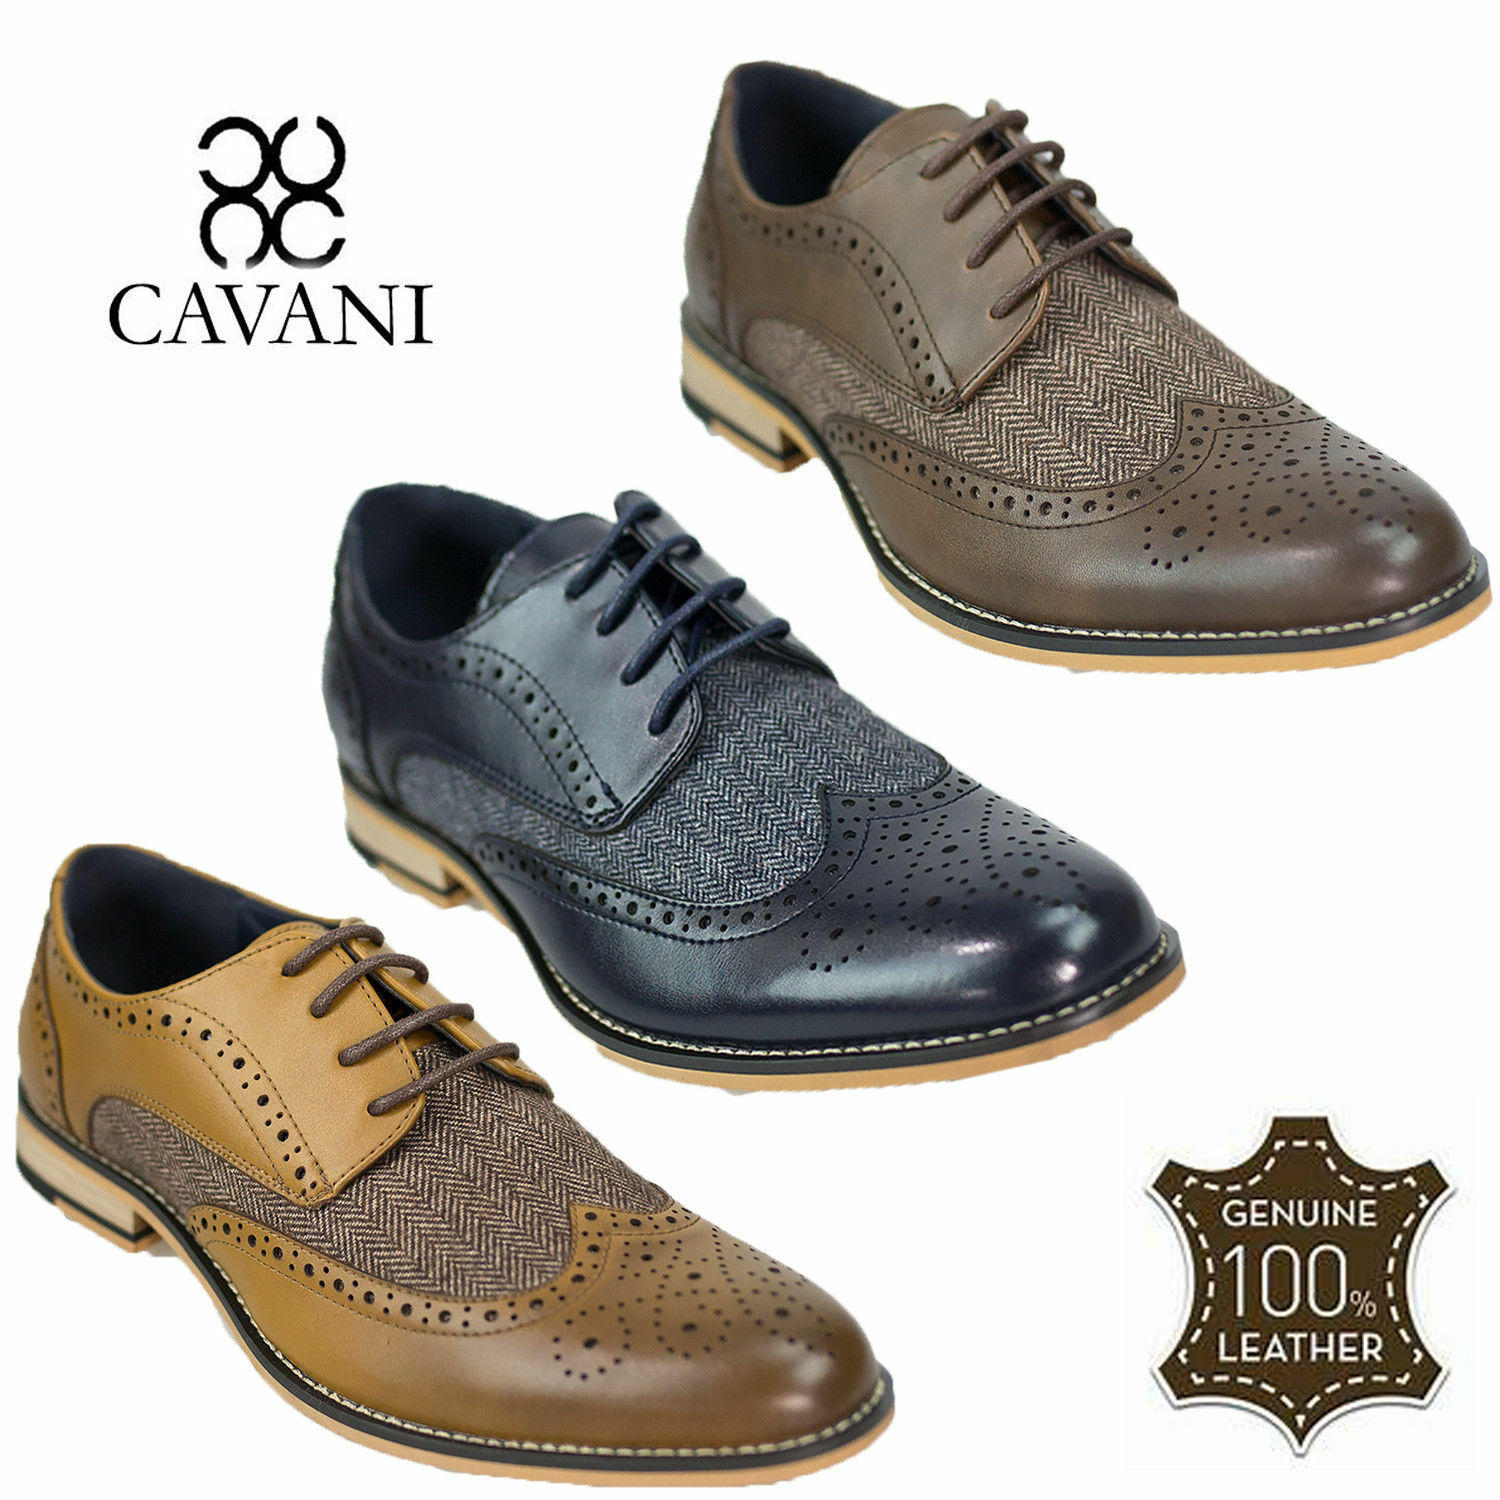 Mens Real Italian Leather Cavani Tweed Contrast Brogues Lace Up Formal schuhe